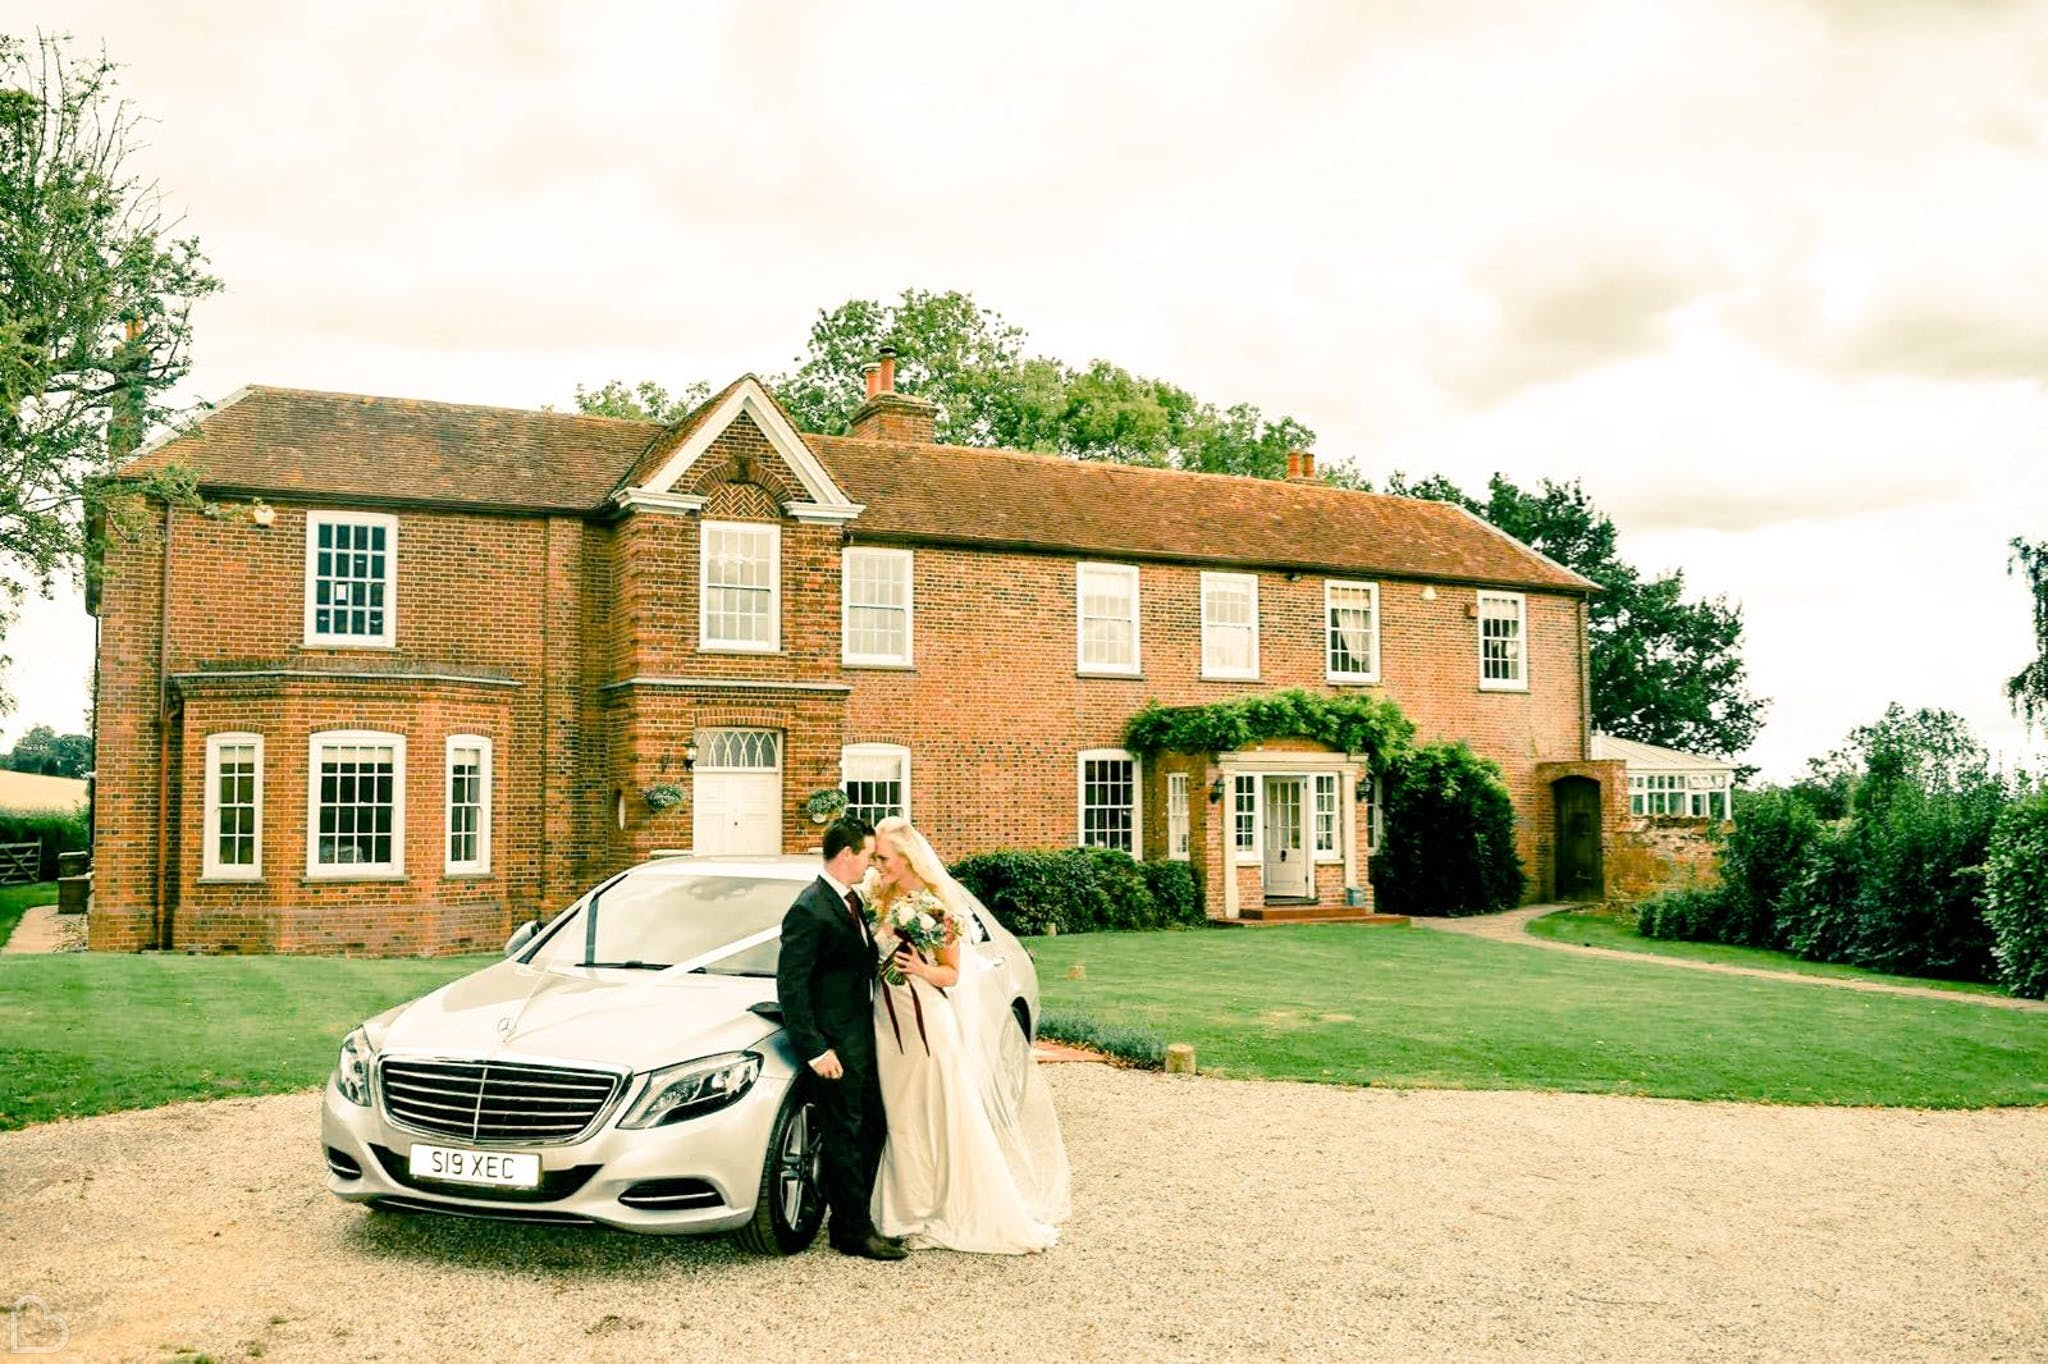 Newlyweds sit on wedding car in front of Downham Hall Wedding Venue in Essex